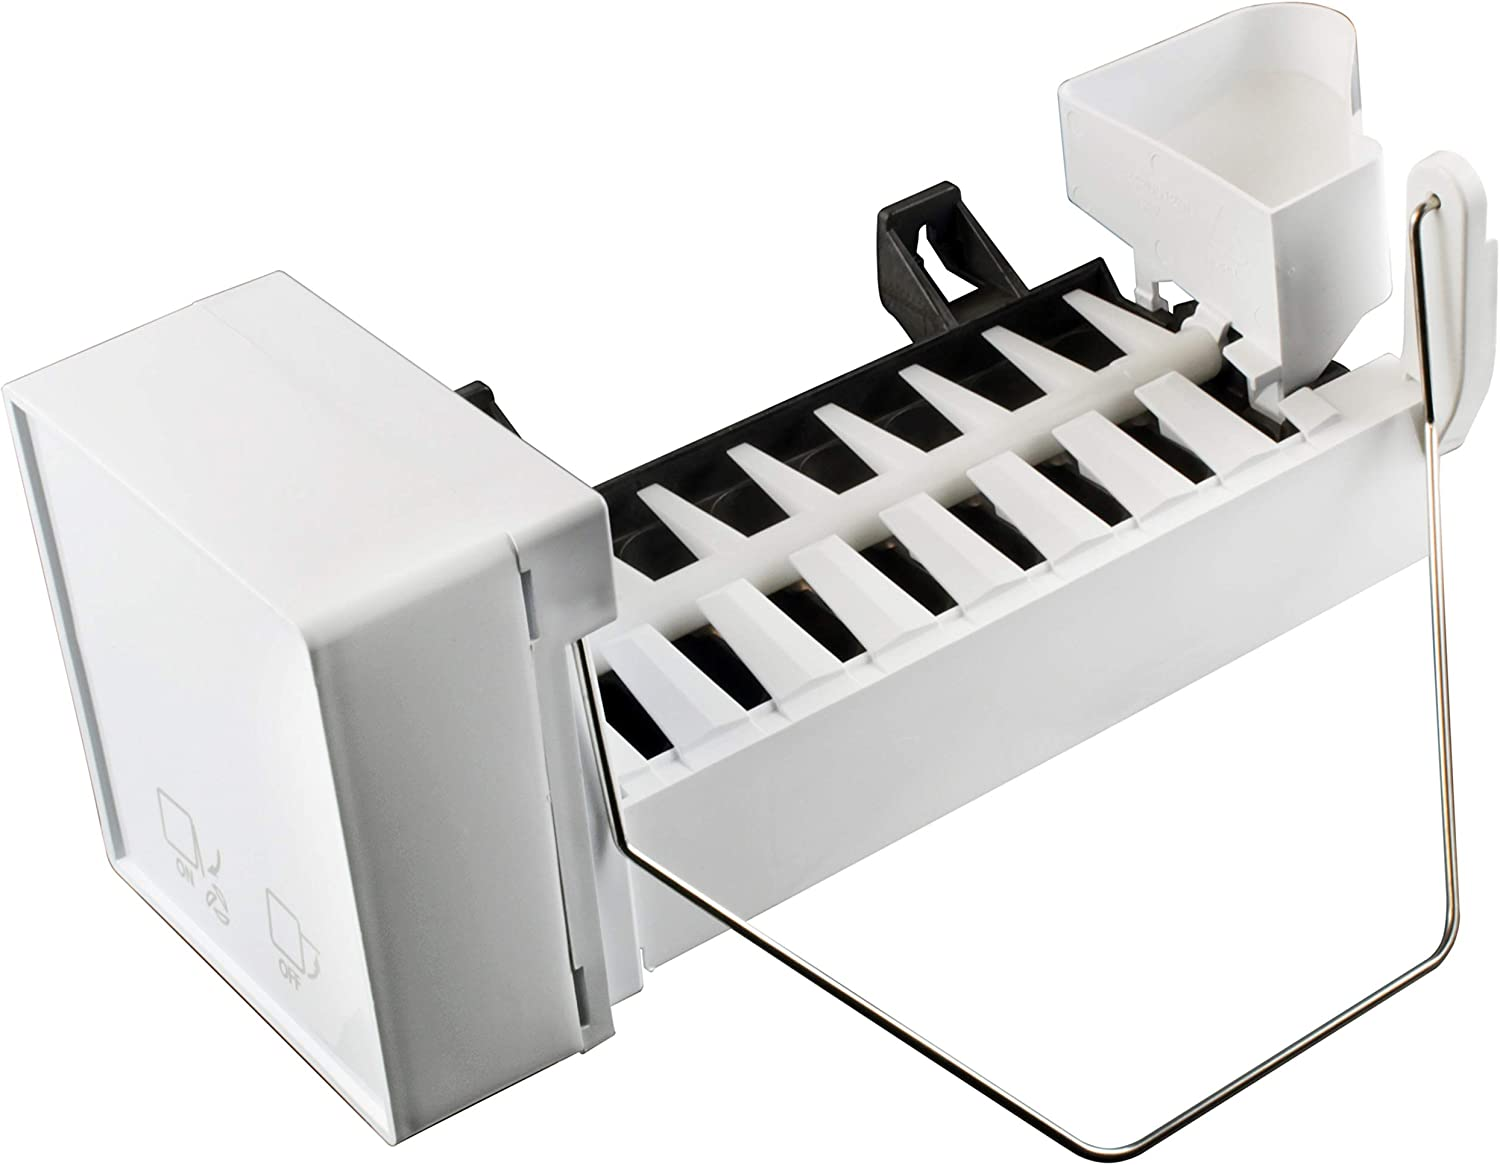 Supplying Demand 5303918493 Refrigerator Ice Maker Compatible With Frigidaire Fits 1794546, 241798219